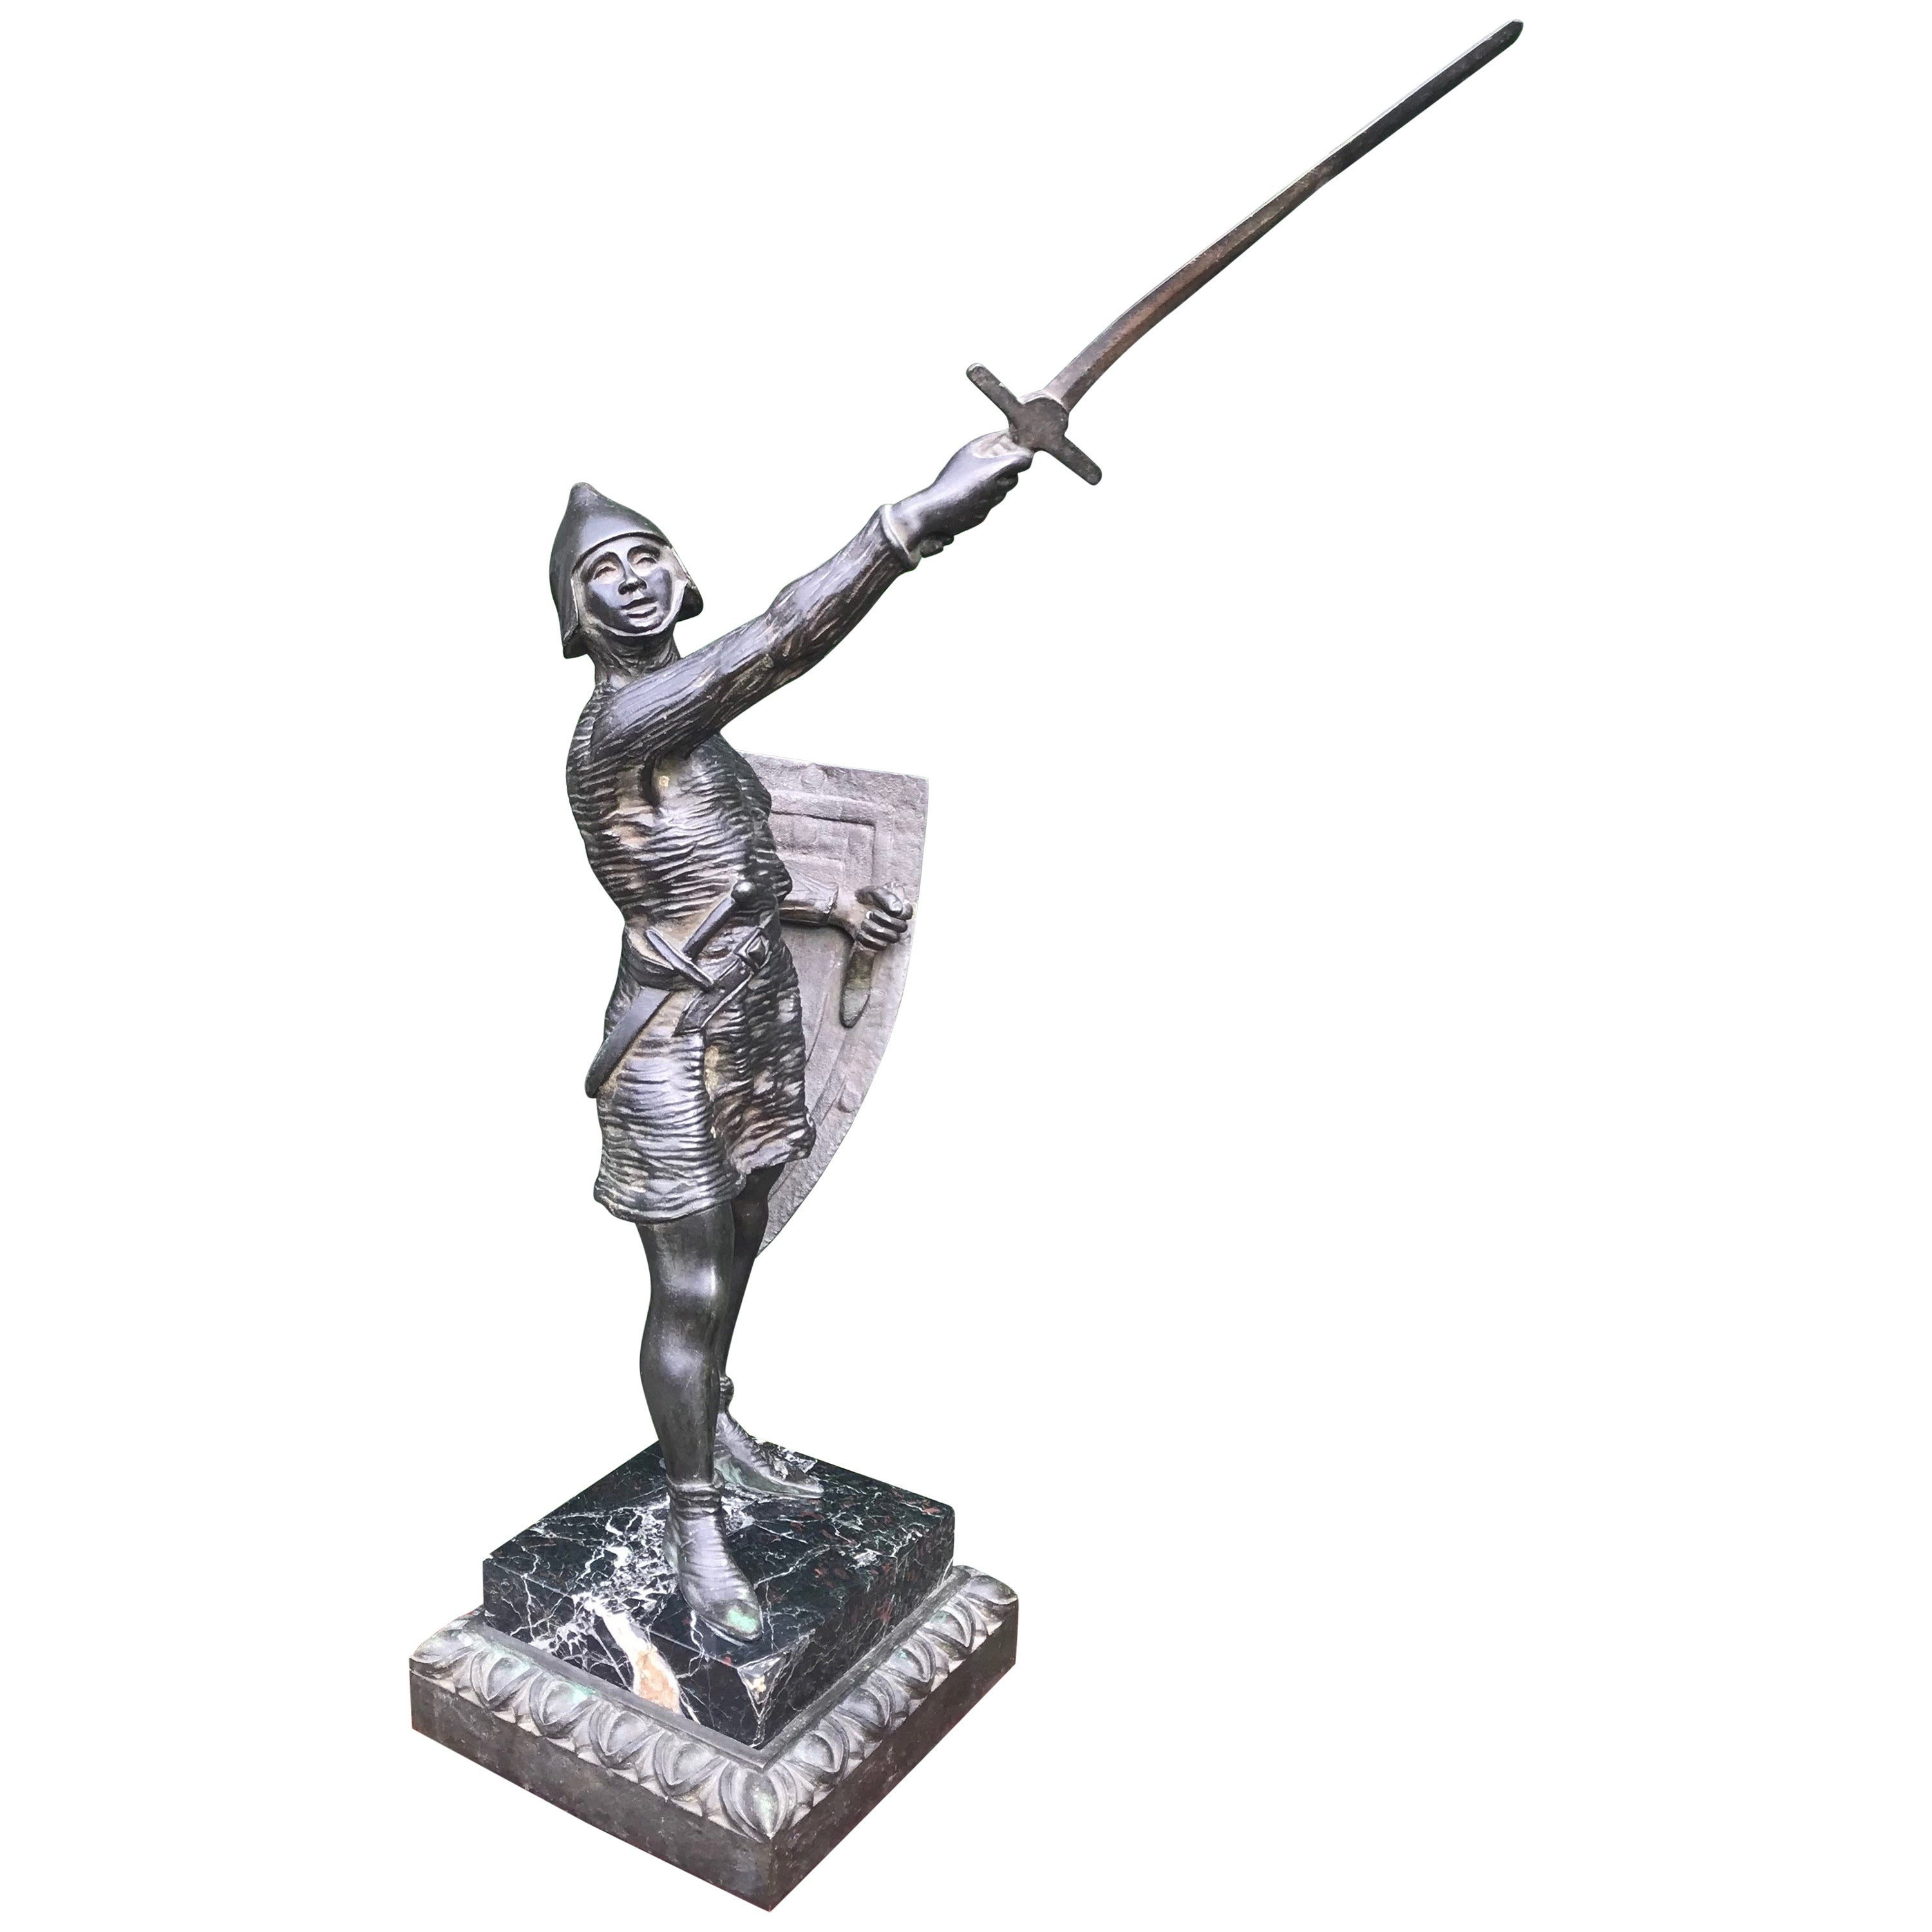 Stunning Antique Bronze Sculpture of a Sword Holding Joan of Arc in Chainmail